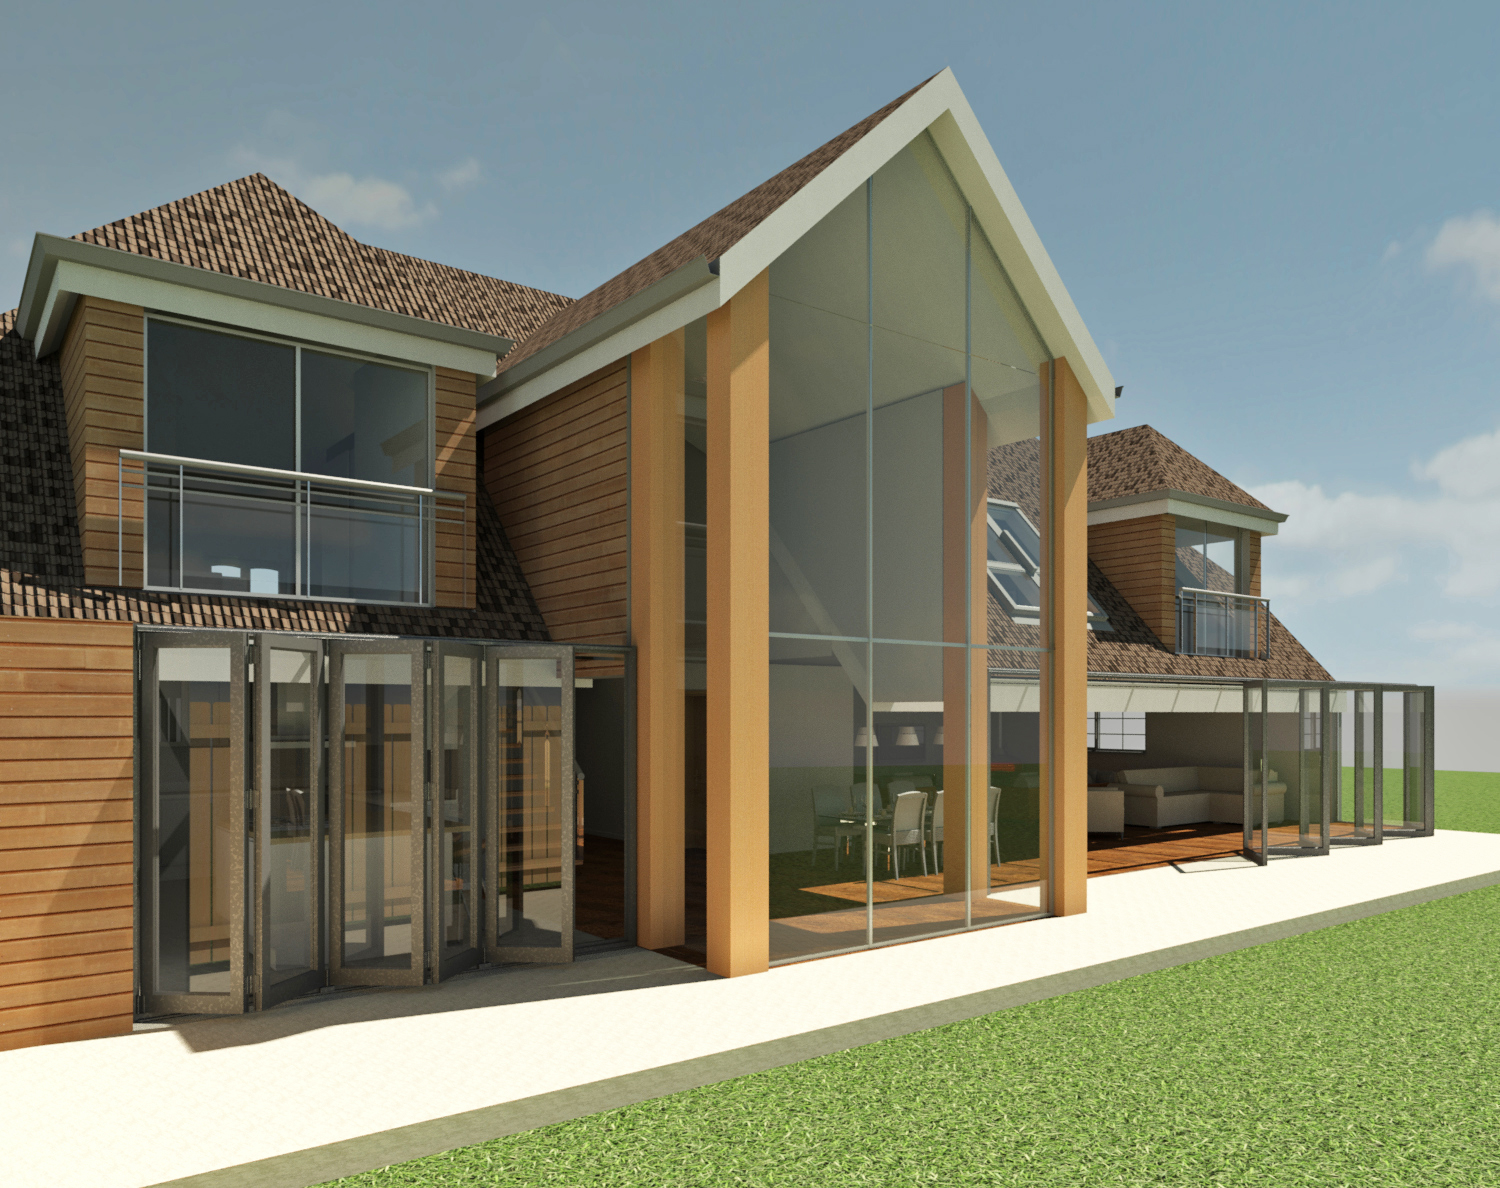 3D Work for residential extension